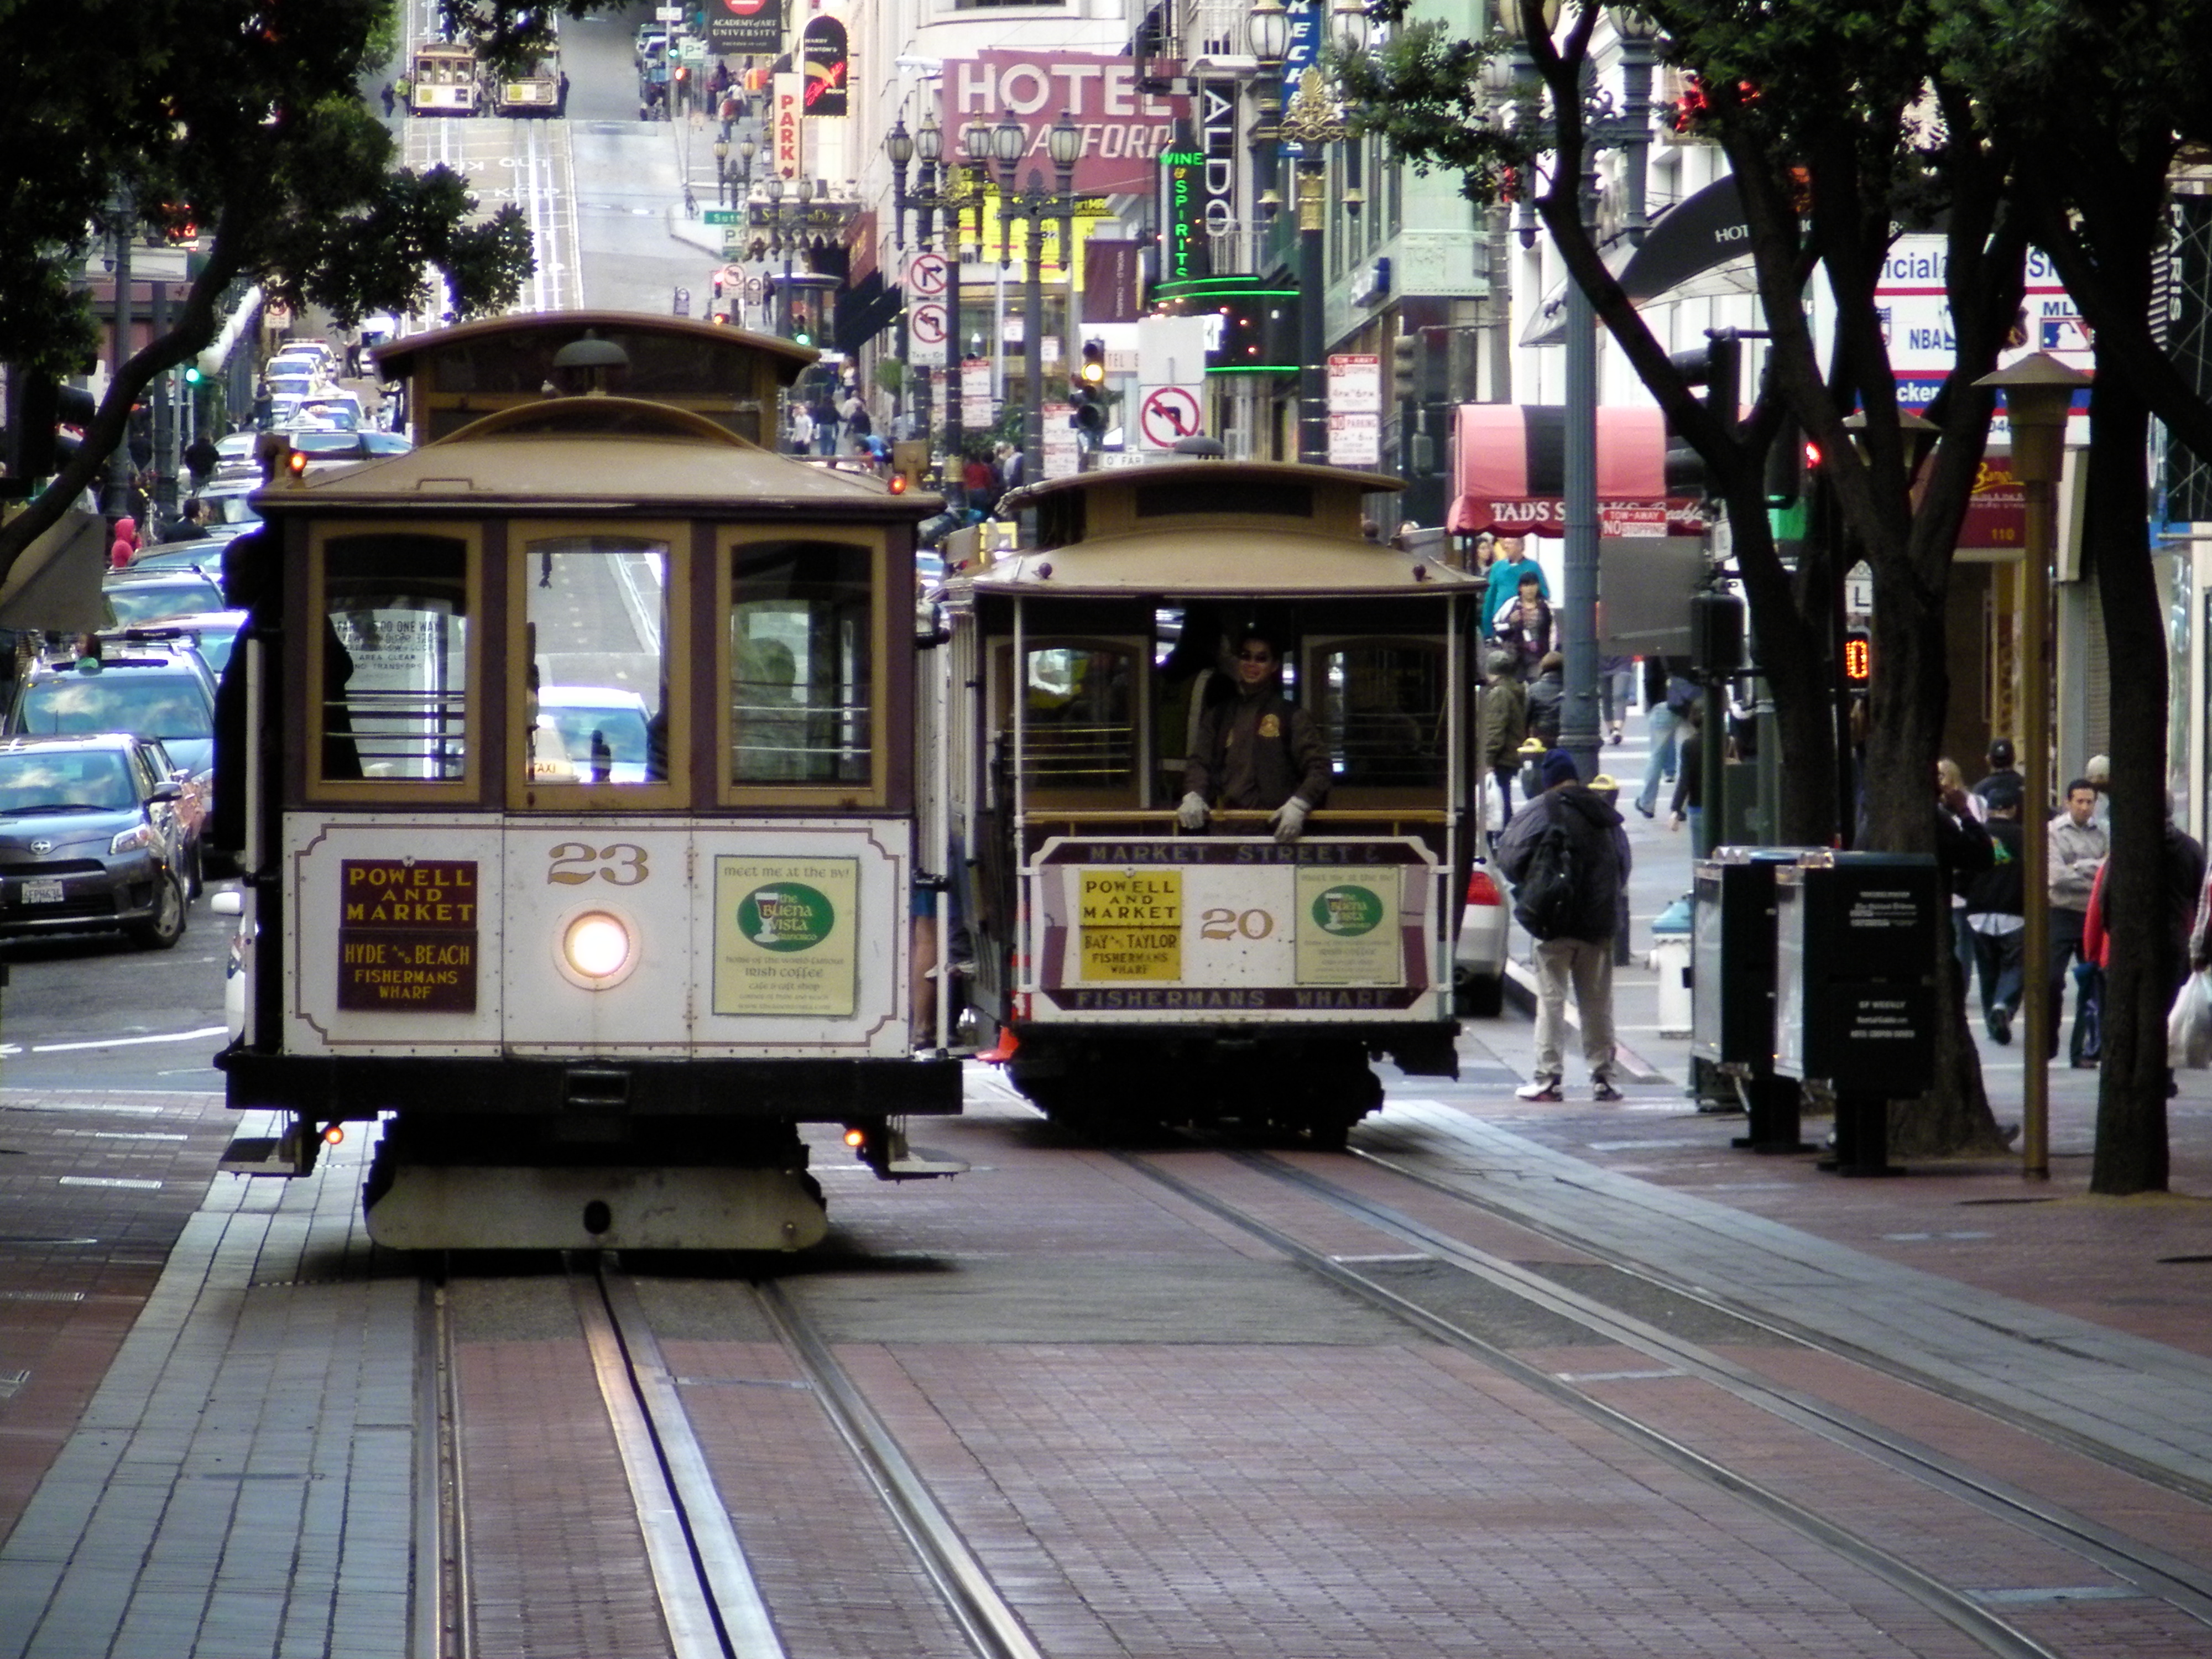 San Francisco's famous cable cars